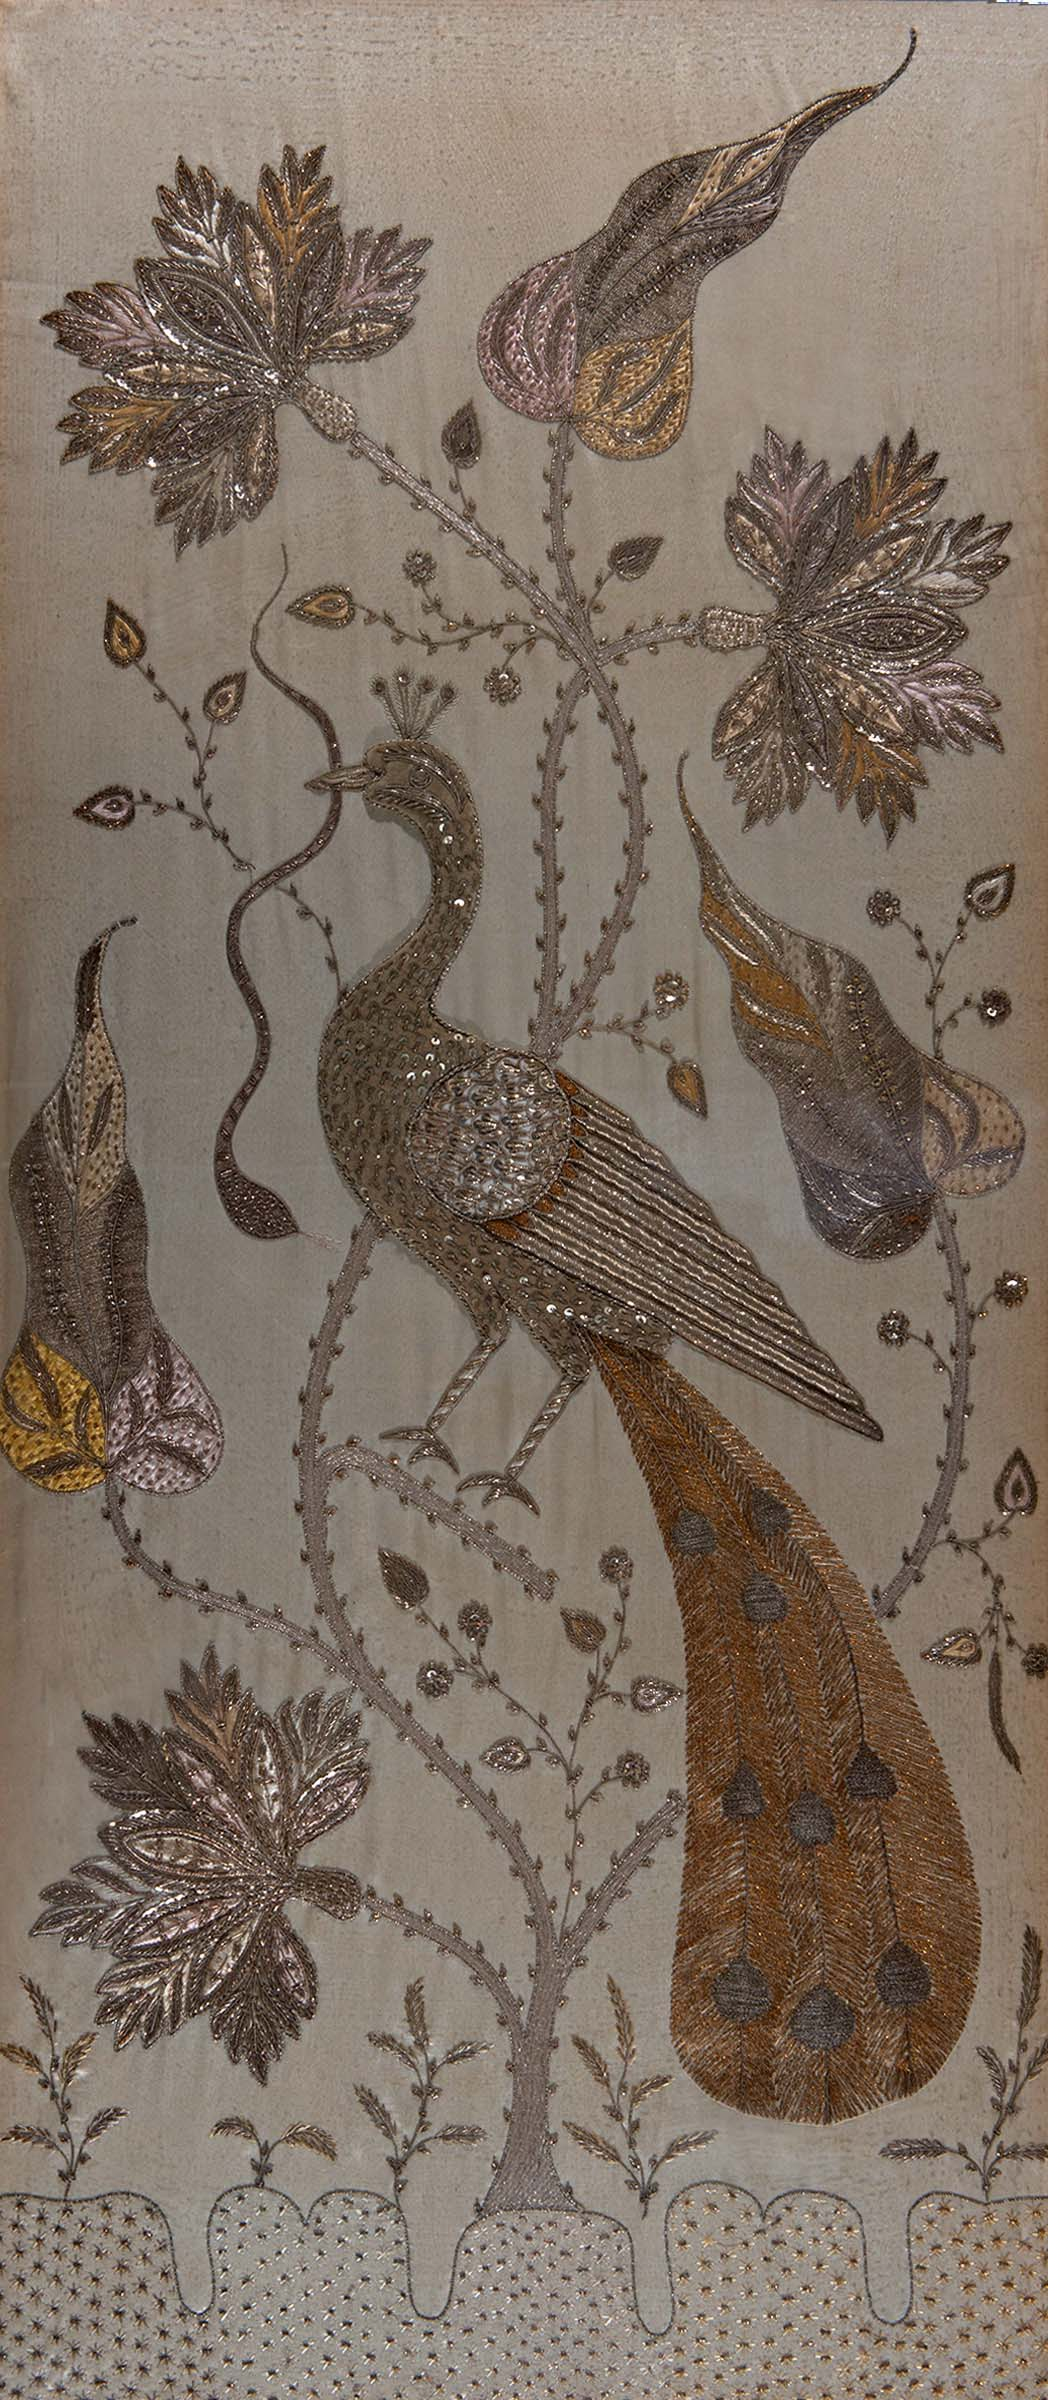 Lot 1876 - LARGE INDIAN FRAMED EMBROIDERED PANEL a Zardozi embroidered panel with depictions of a Peacock,